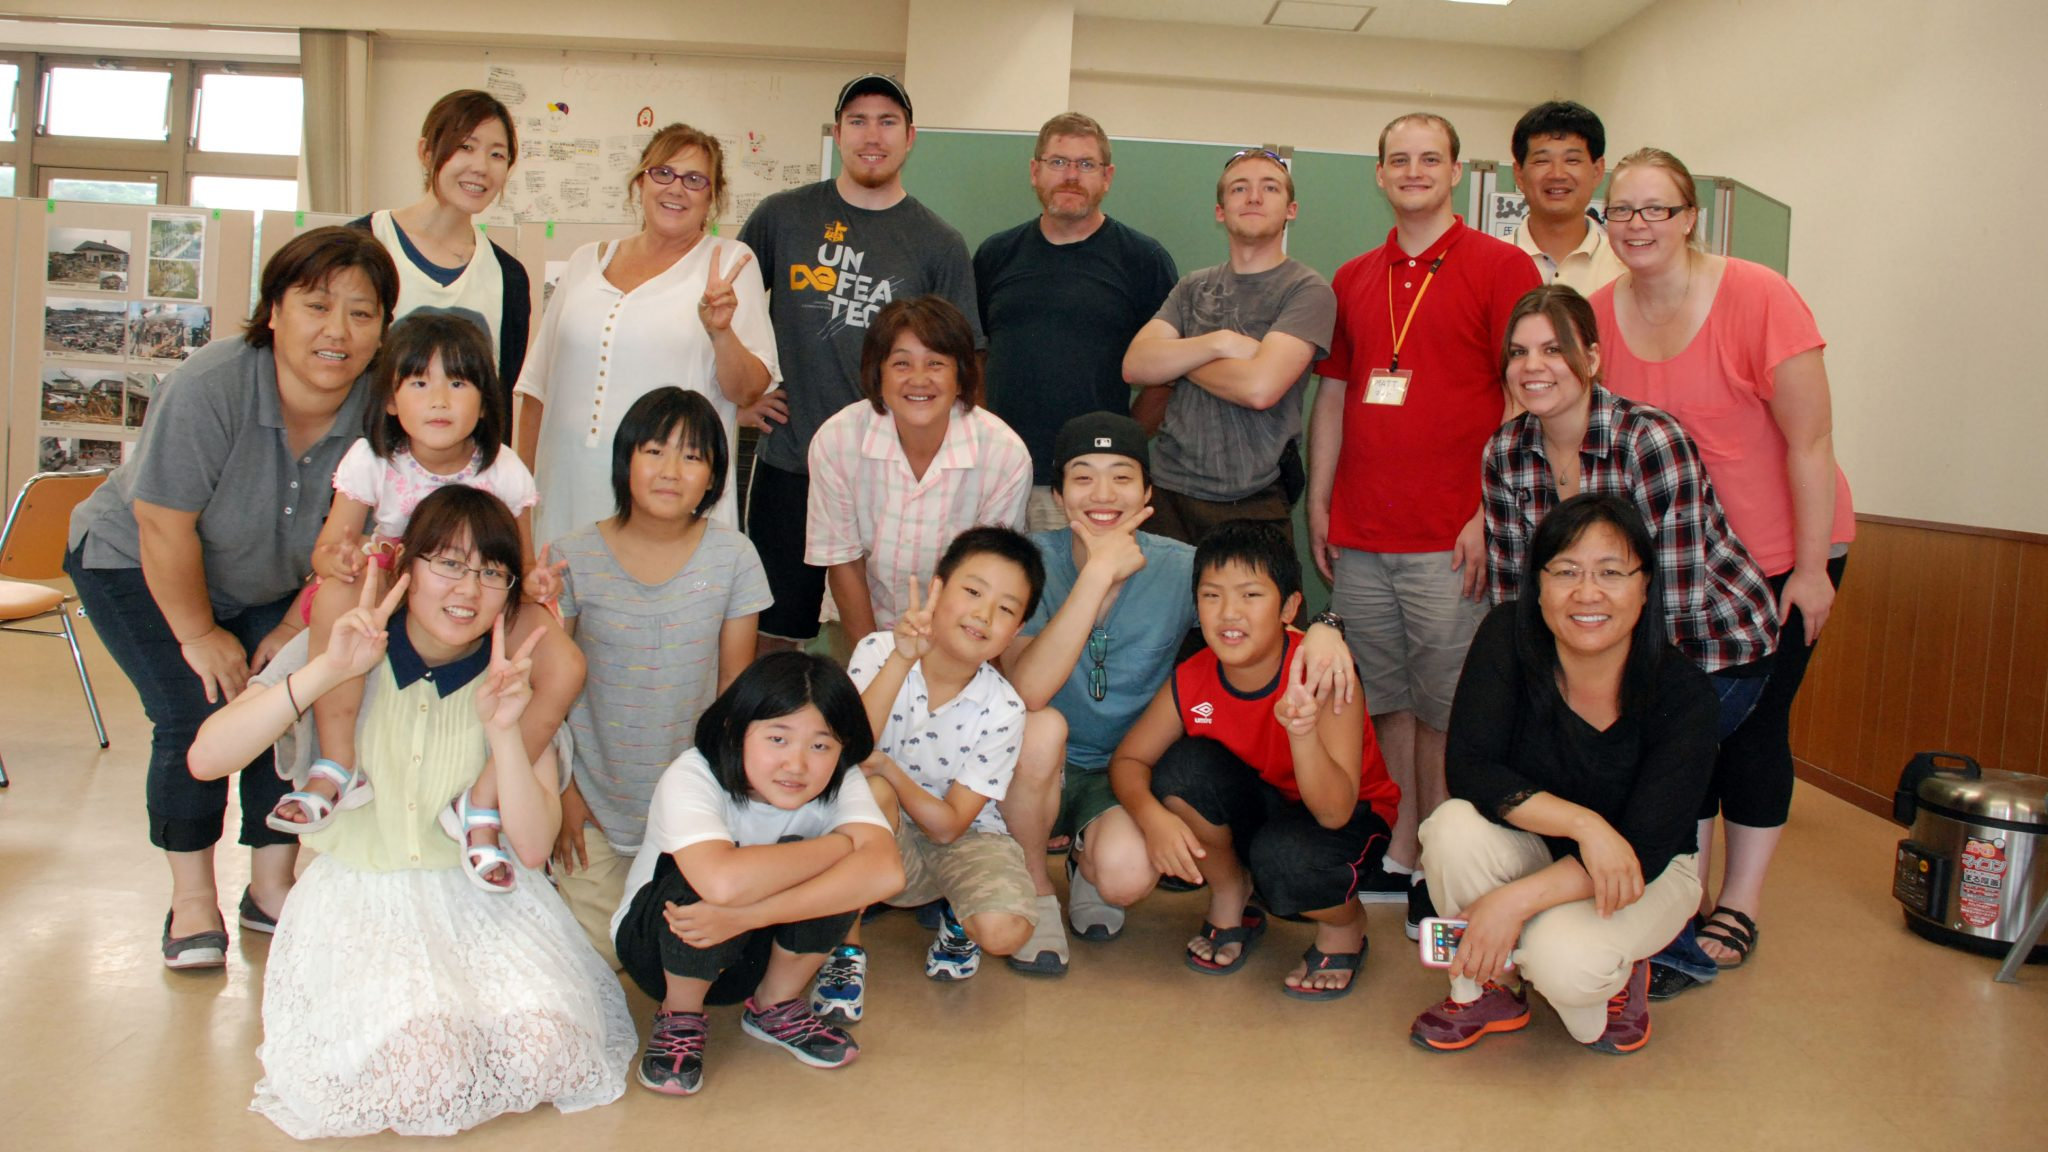 LifePointe Team, Zao Church Team, and Higashi Matsushima residents and children